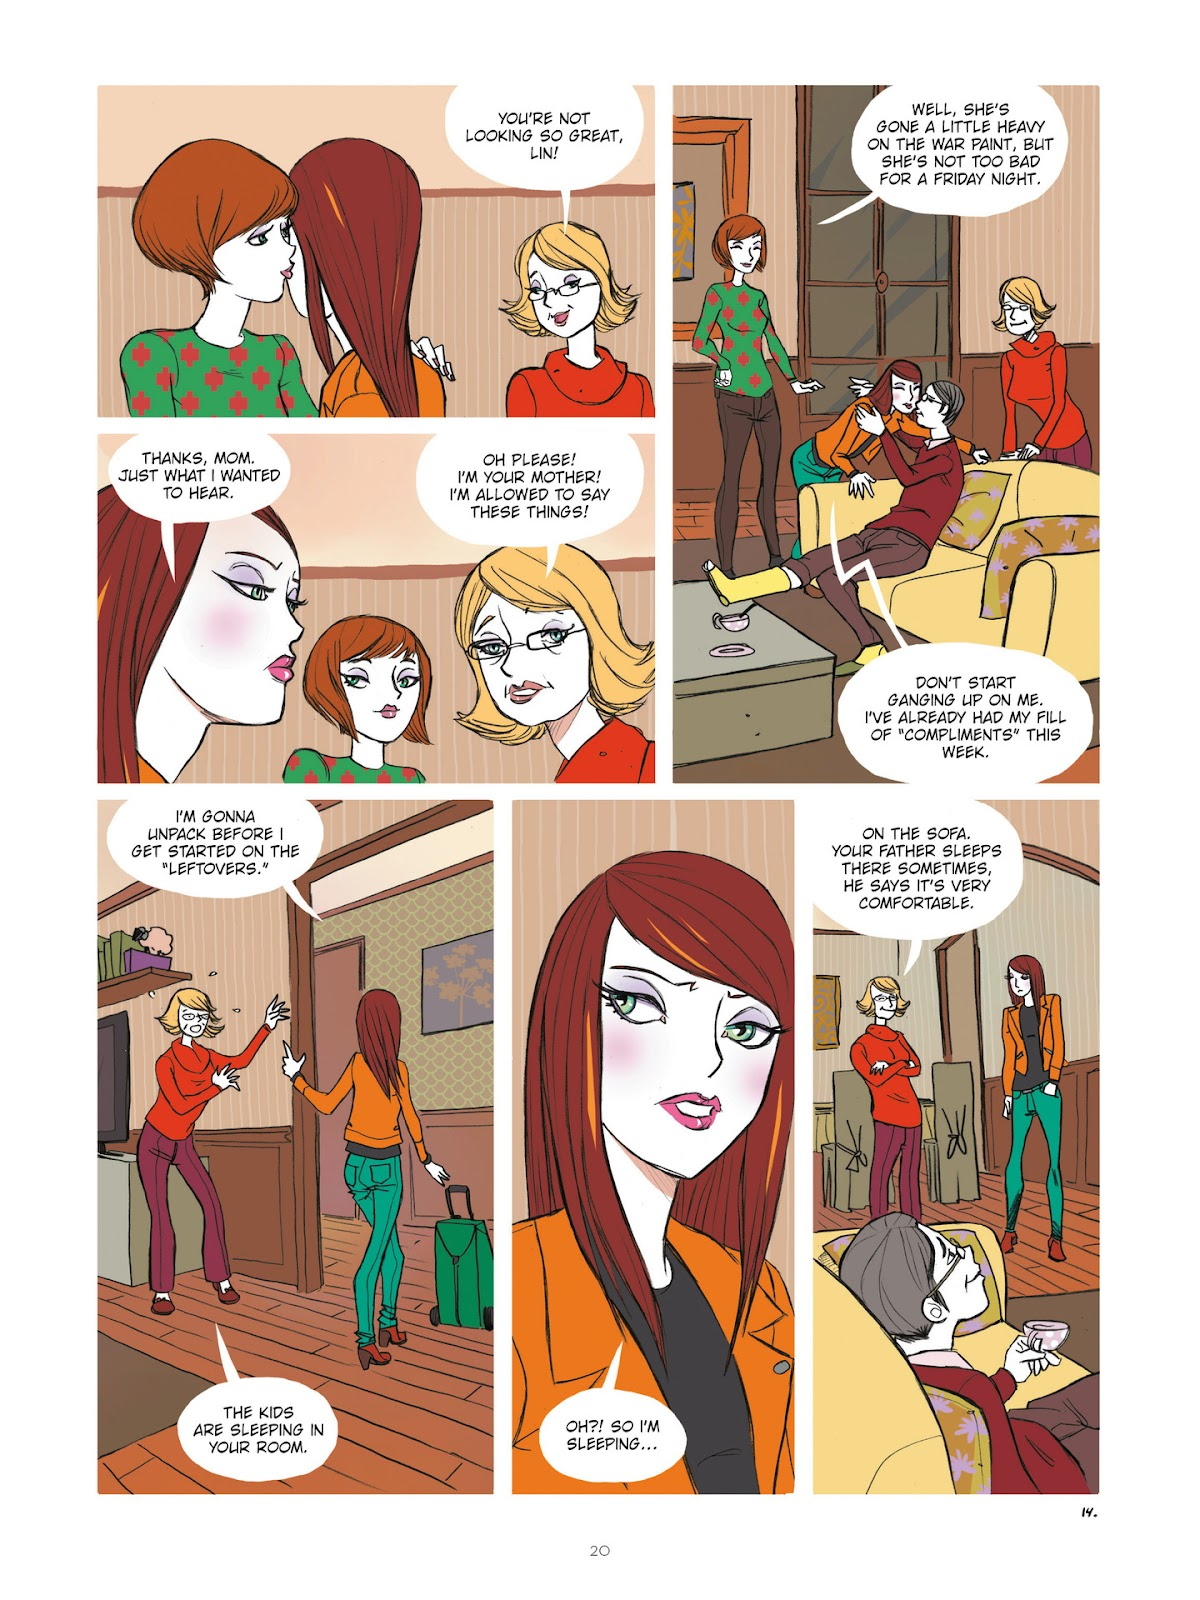 Read online Diary of A Femen comic -  Issue # TPB - 22